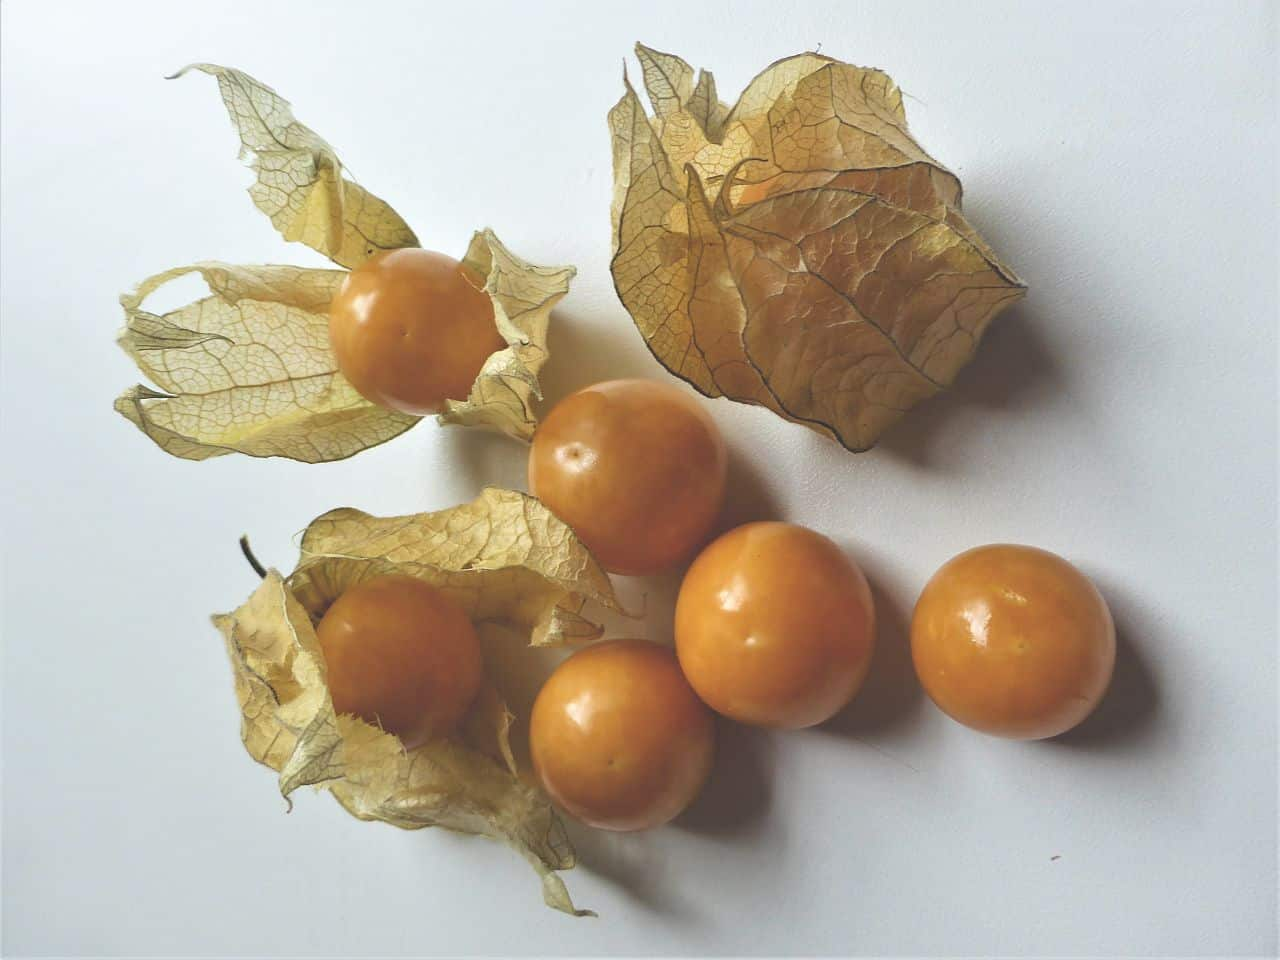 Reife Physalis